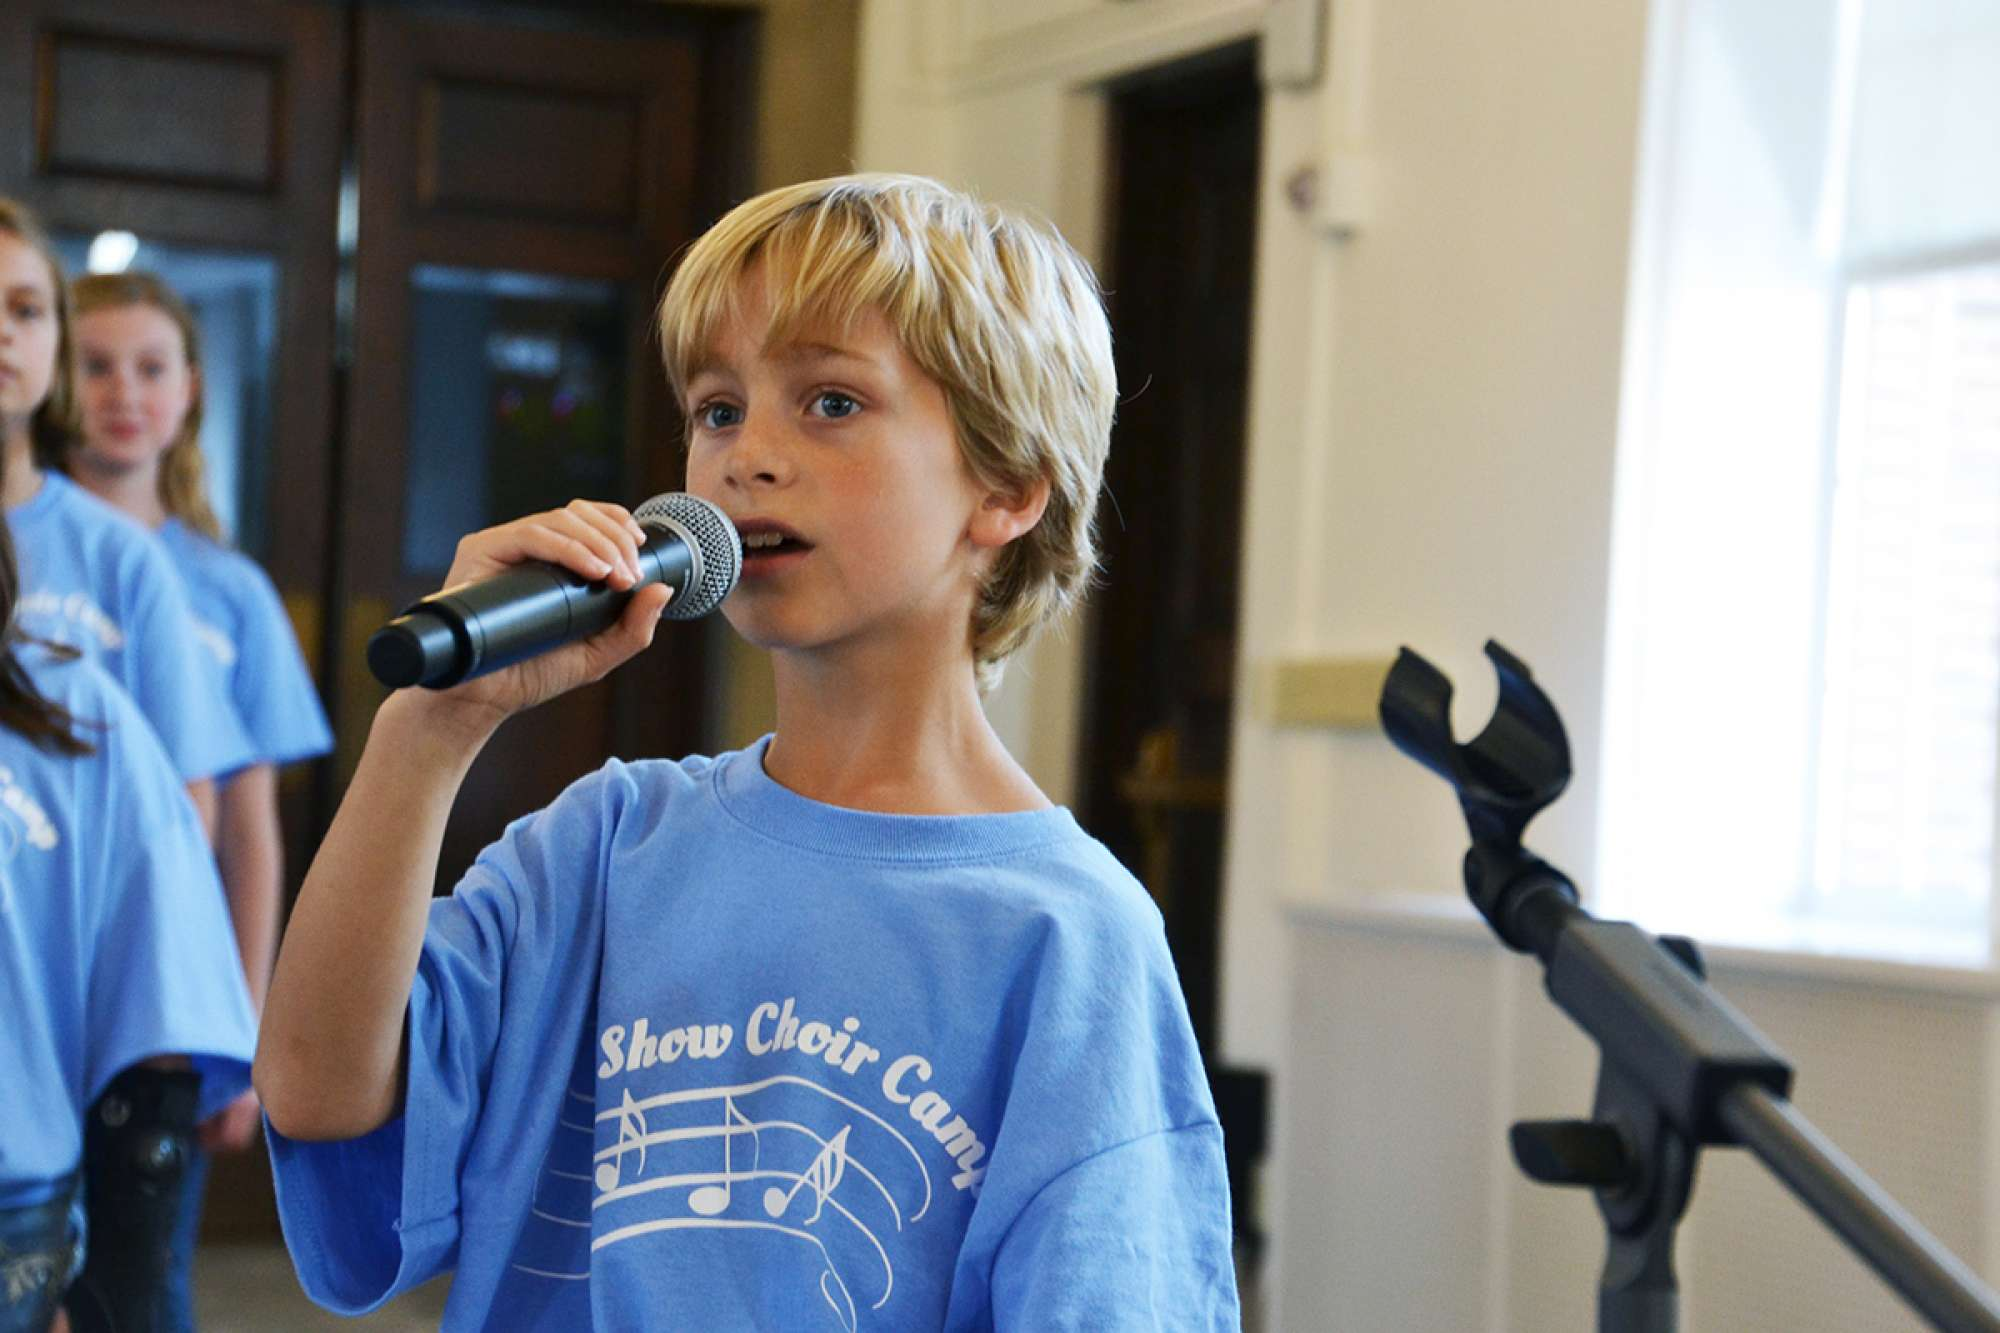 Boy singing with a microphone